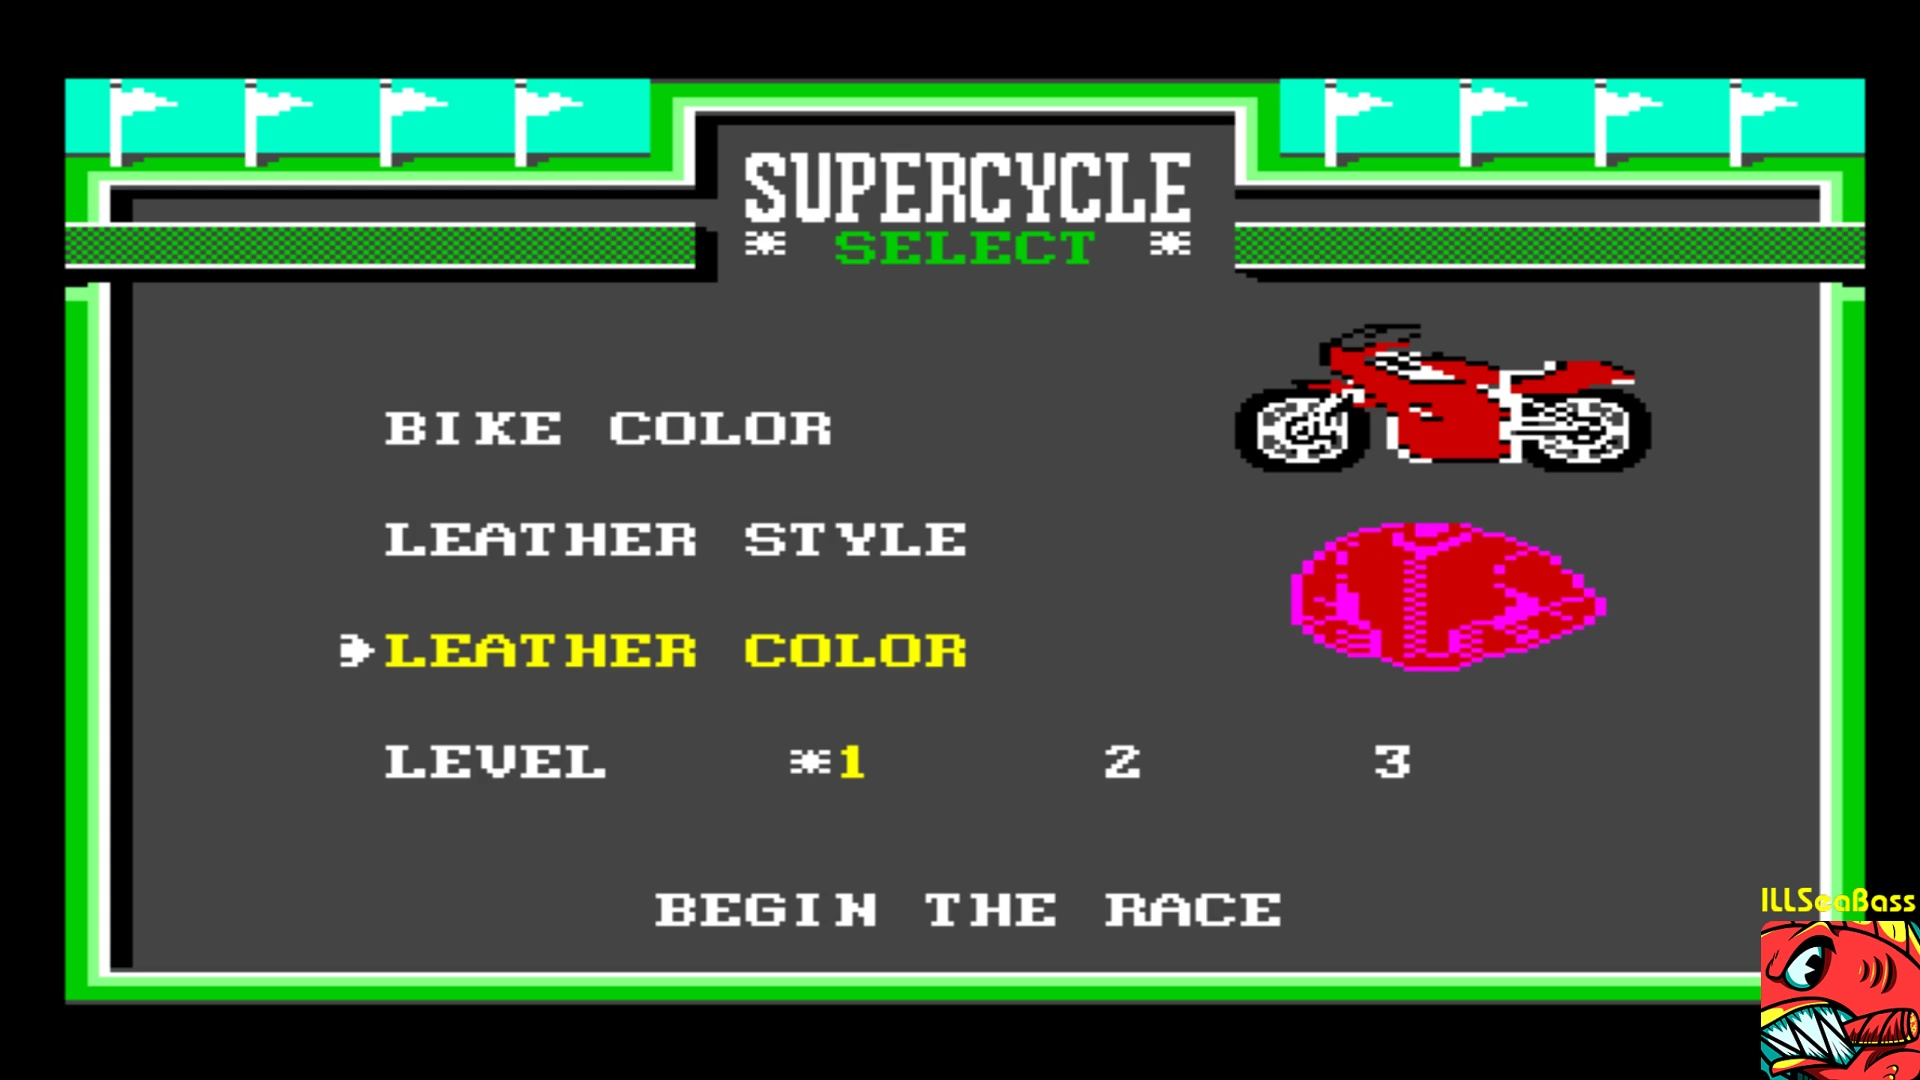 ILLSeaBass: Super Cycle [Level 1 Start] (Commodore 64 Emulated) 128,020 points on 2018-01-16 19:53:04